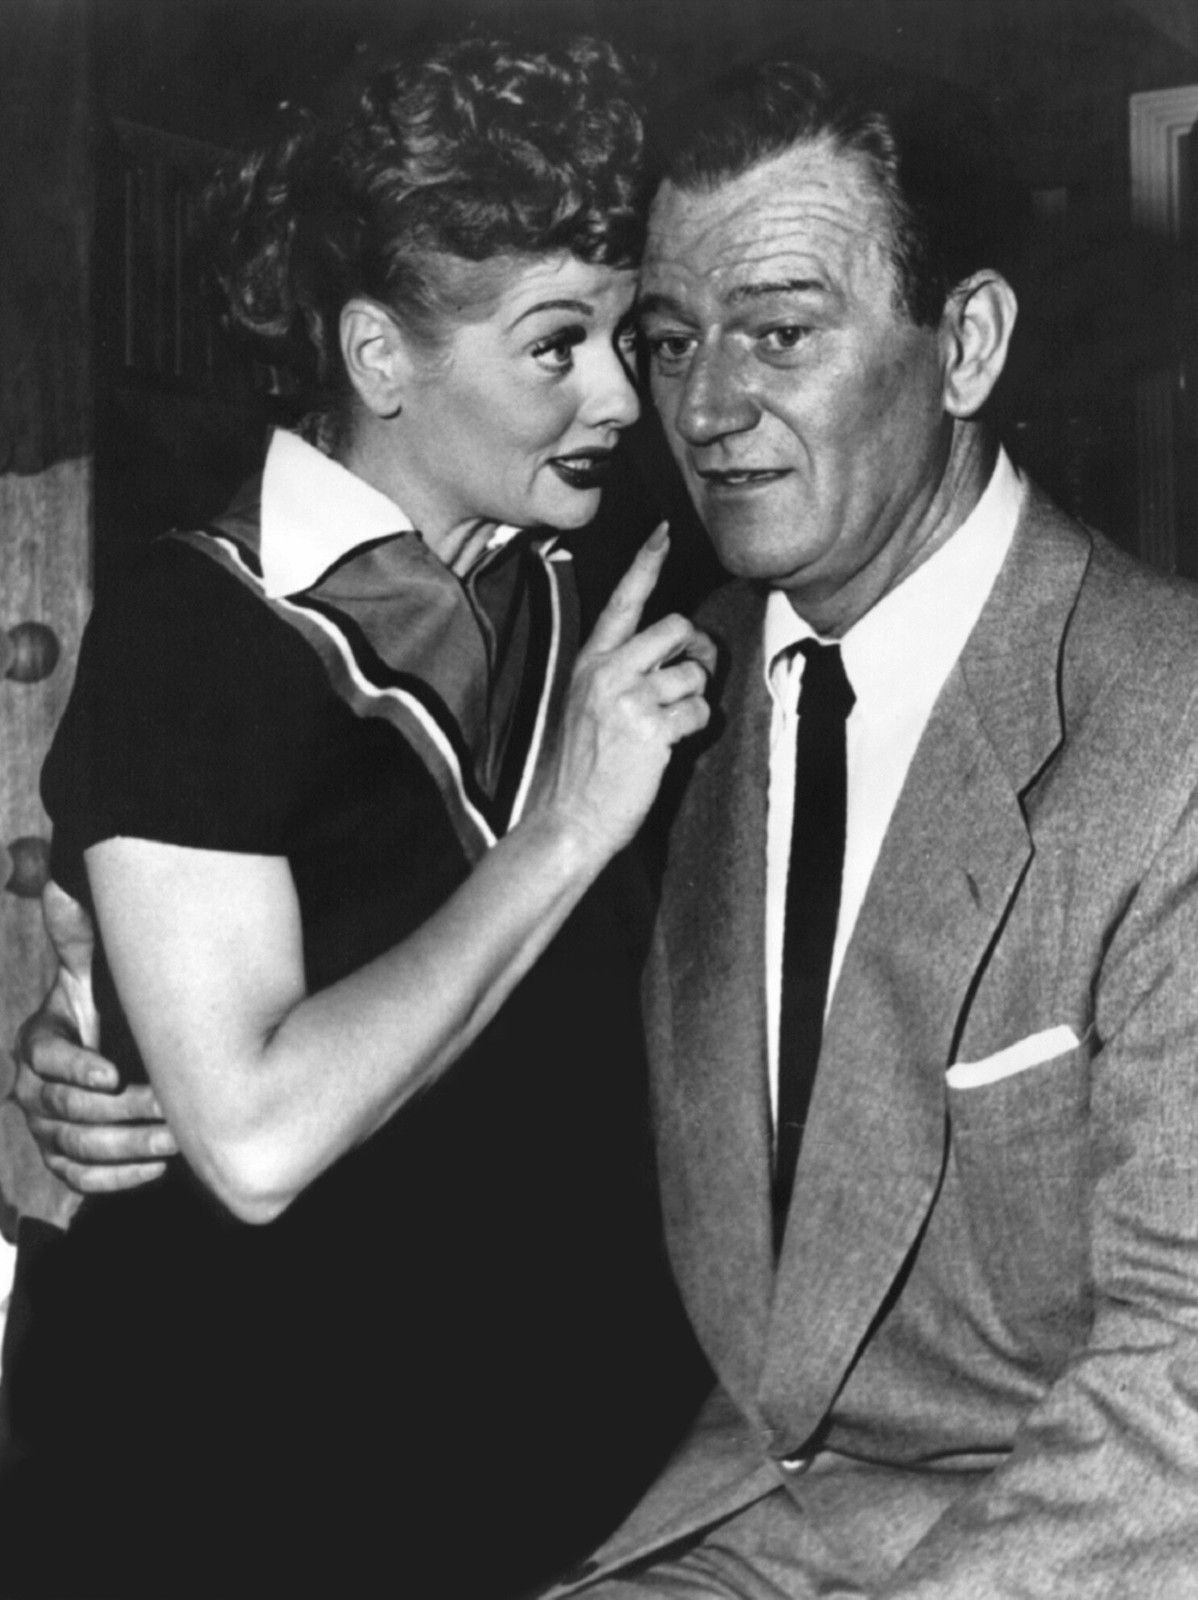 Pin on i love lucy collectibles